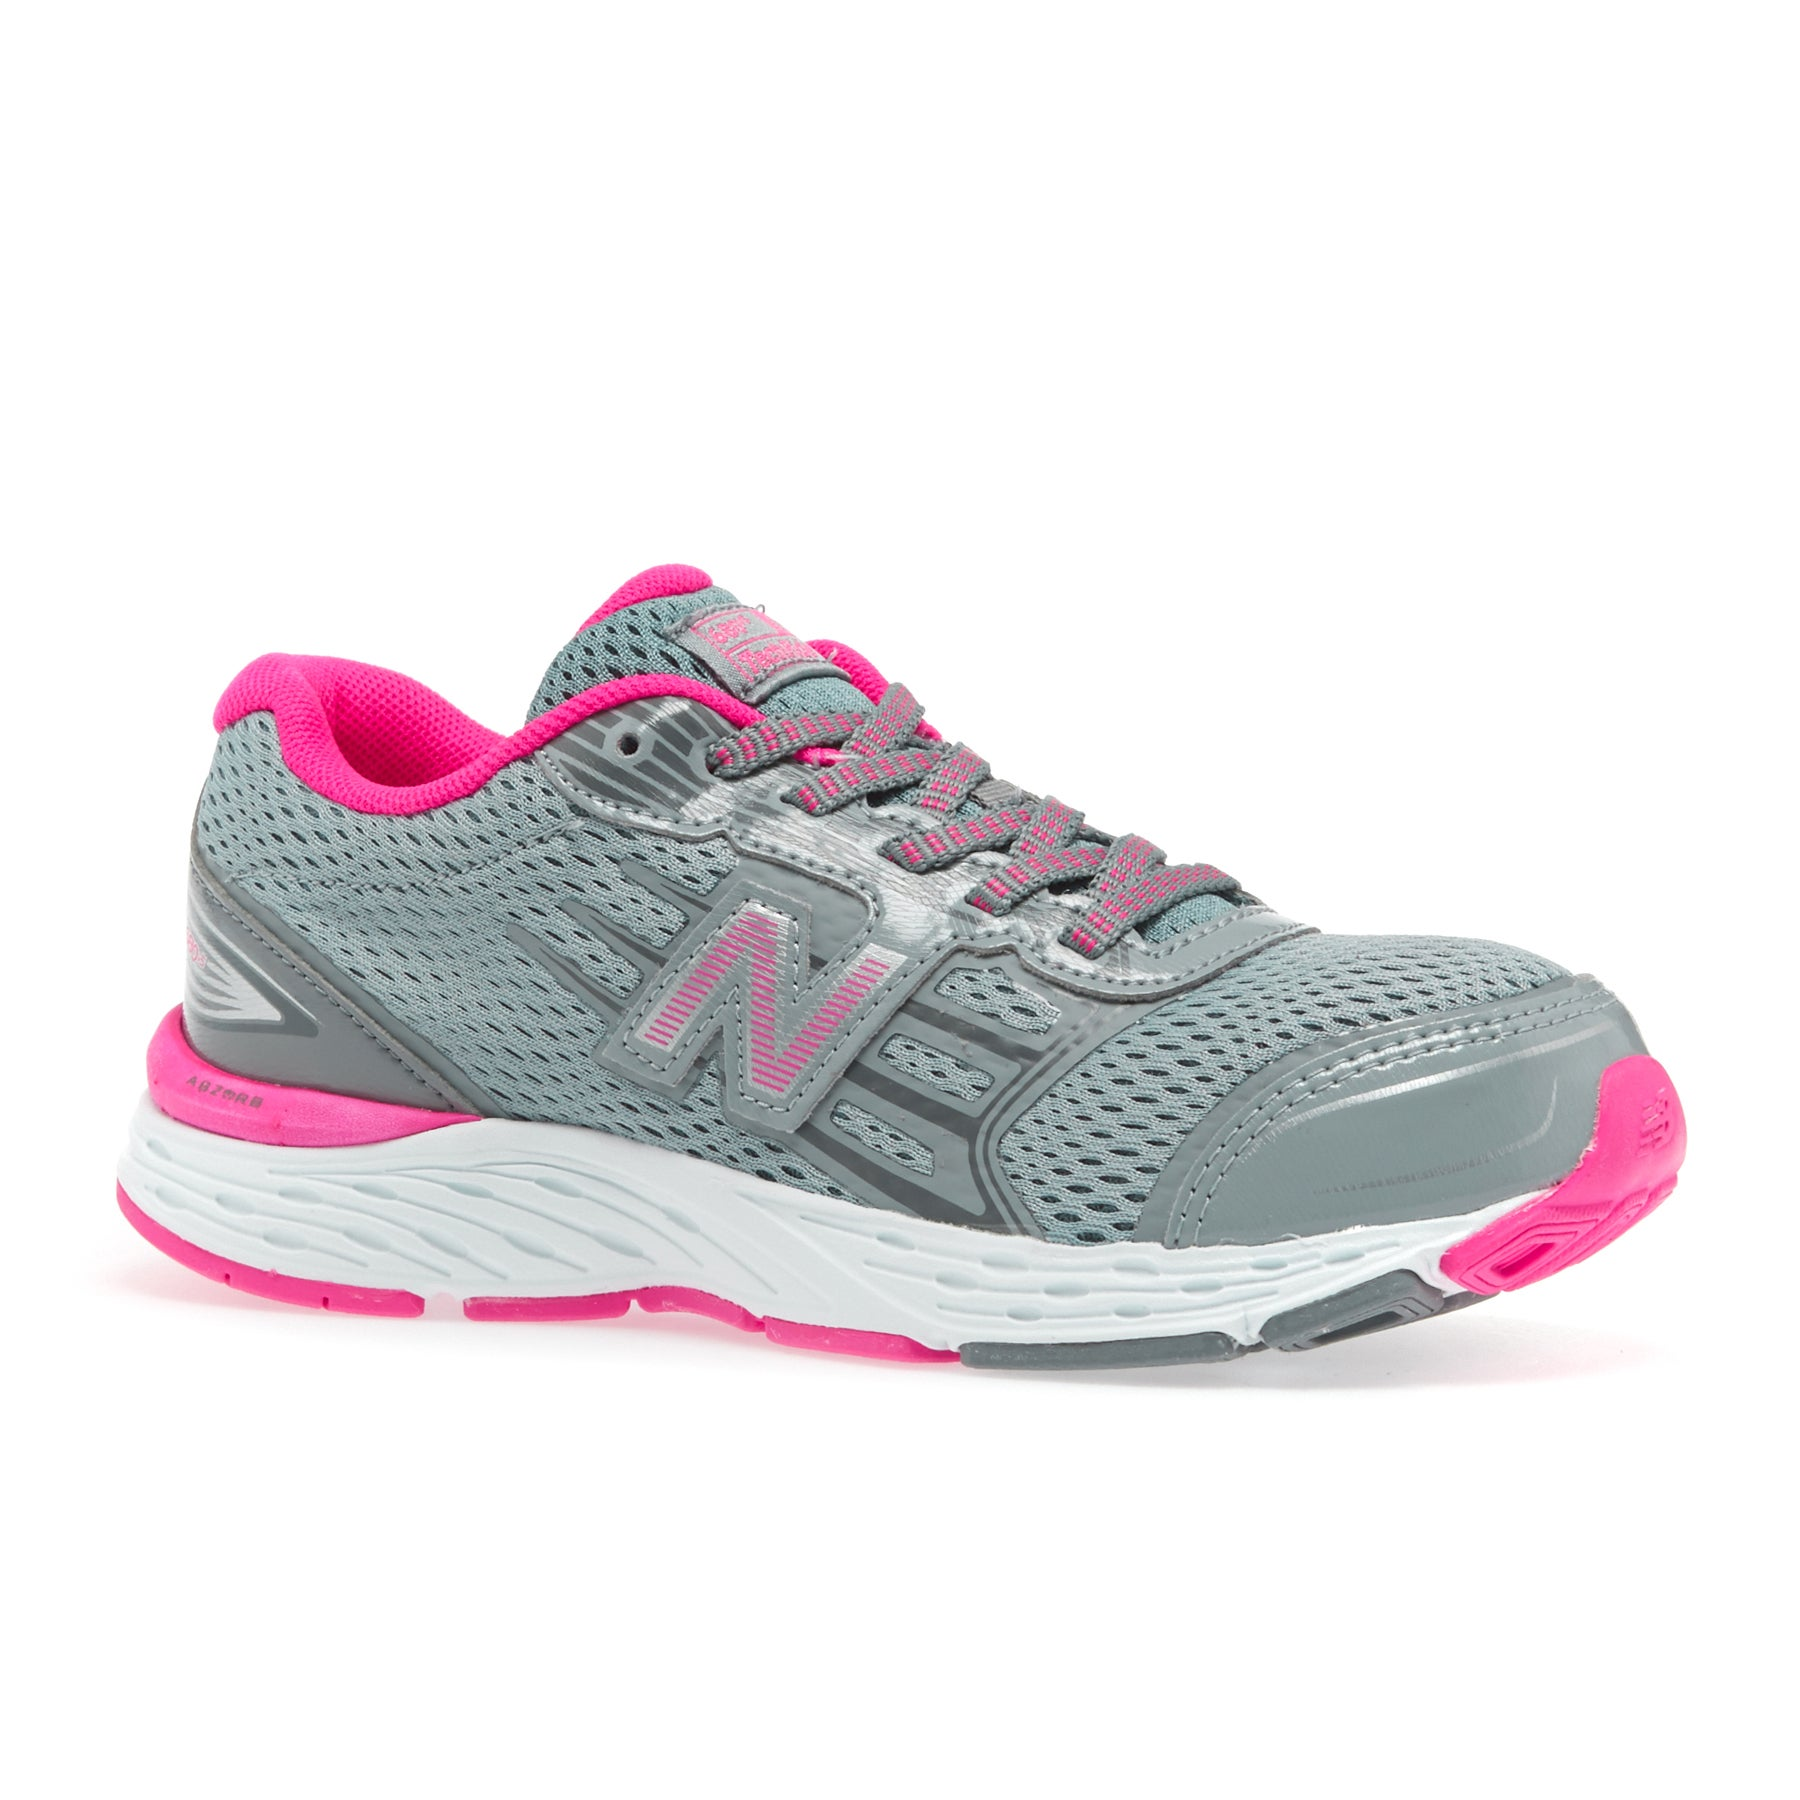 New Balance Kj680 Shoes Free Delivery options on All Orders from Surfdome